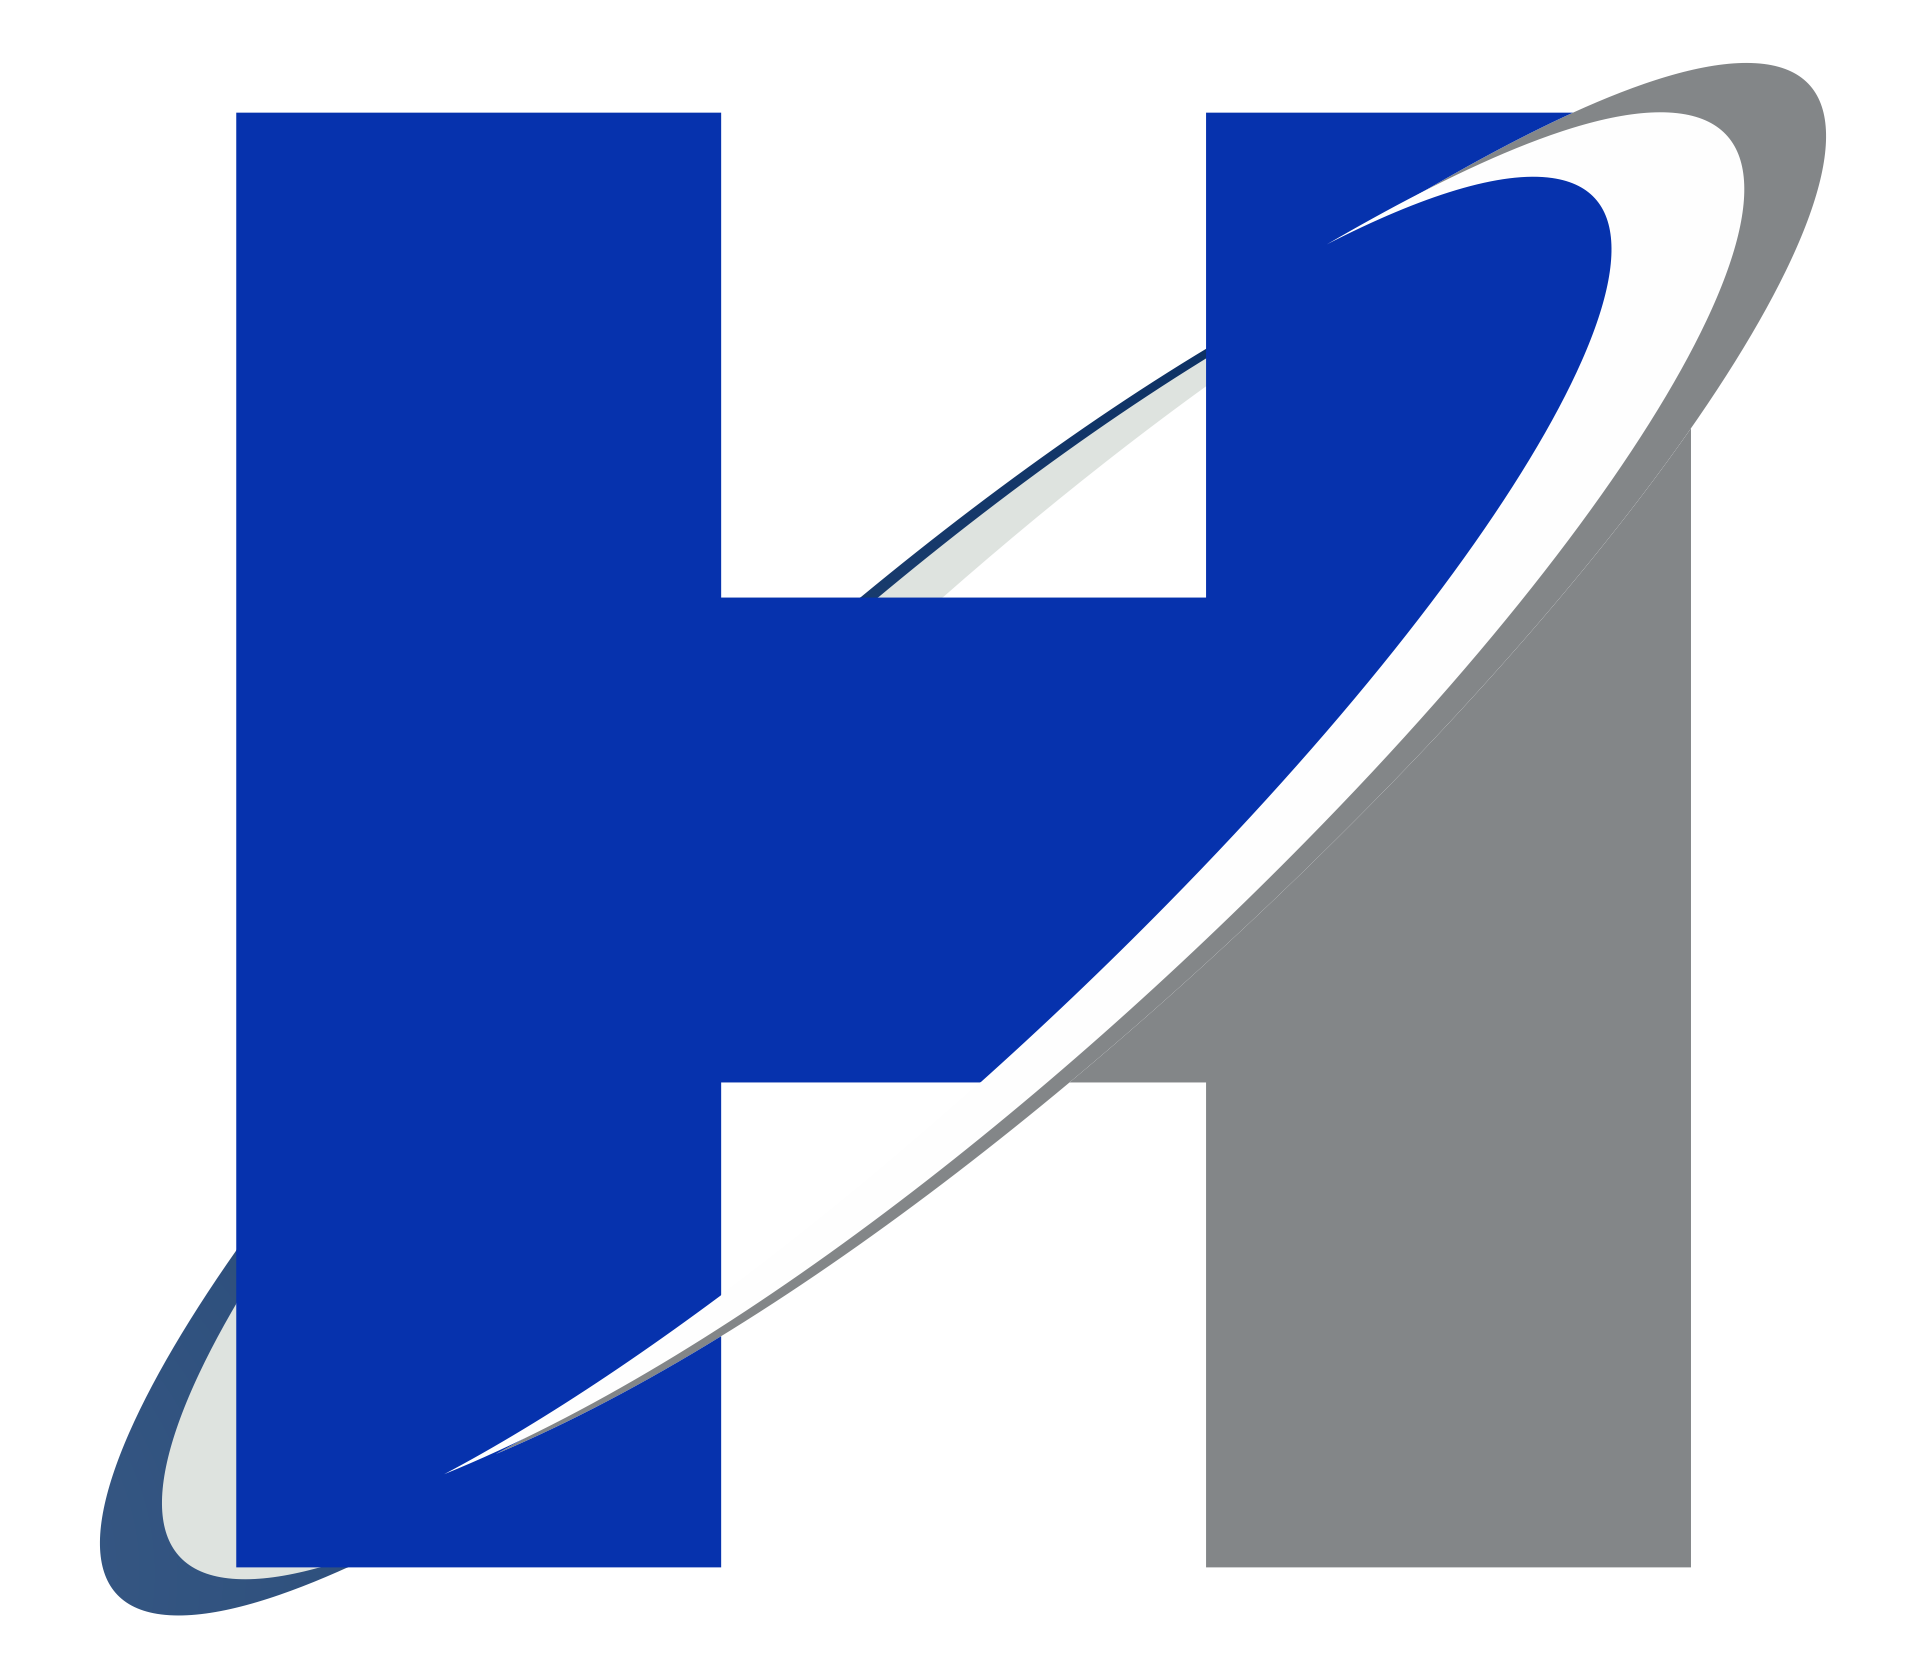 Transparent h logos. Blue